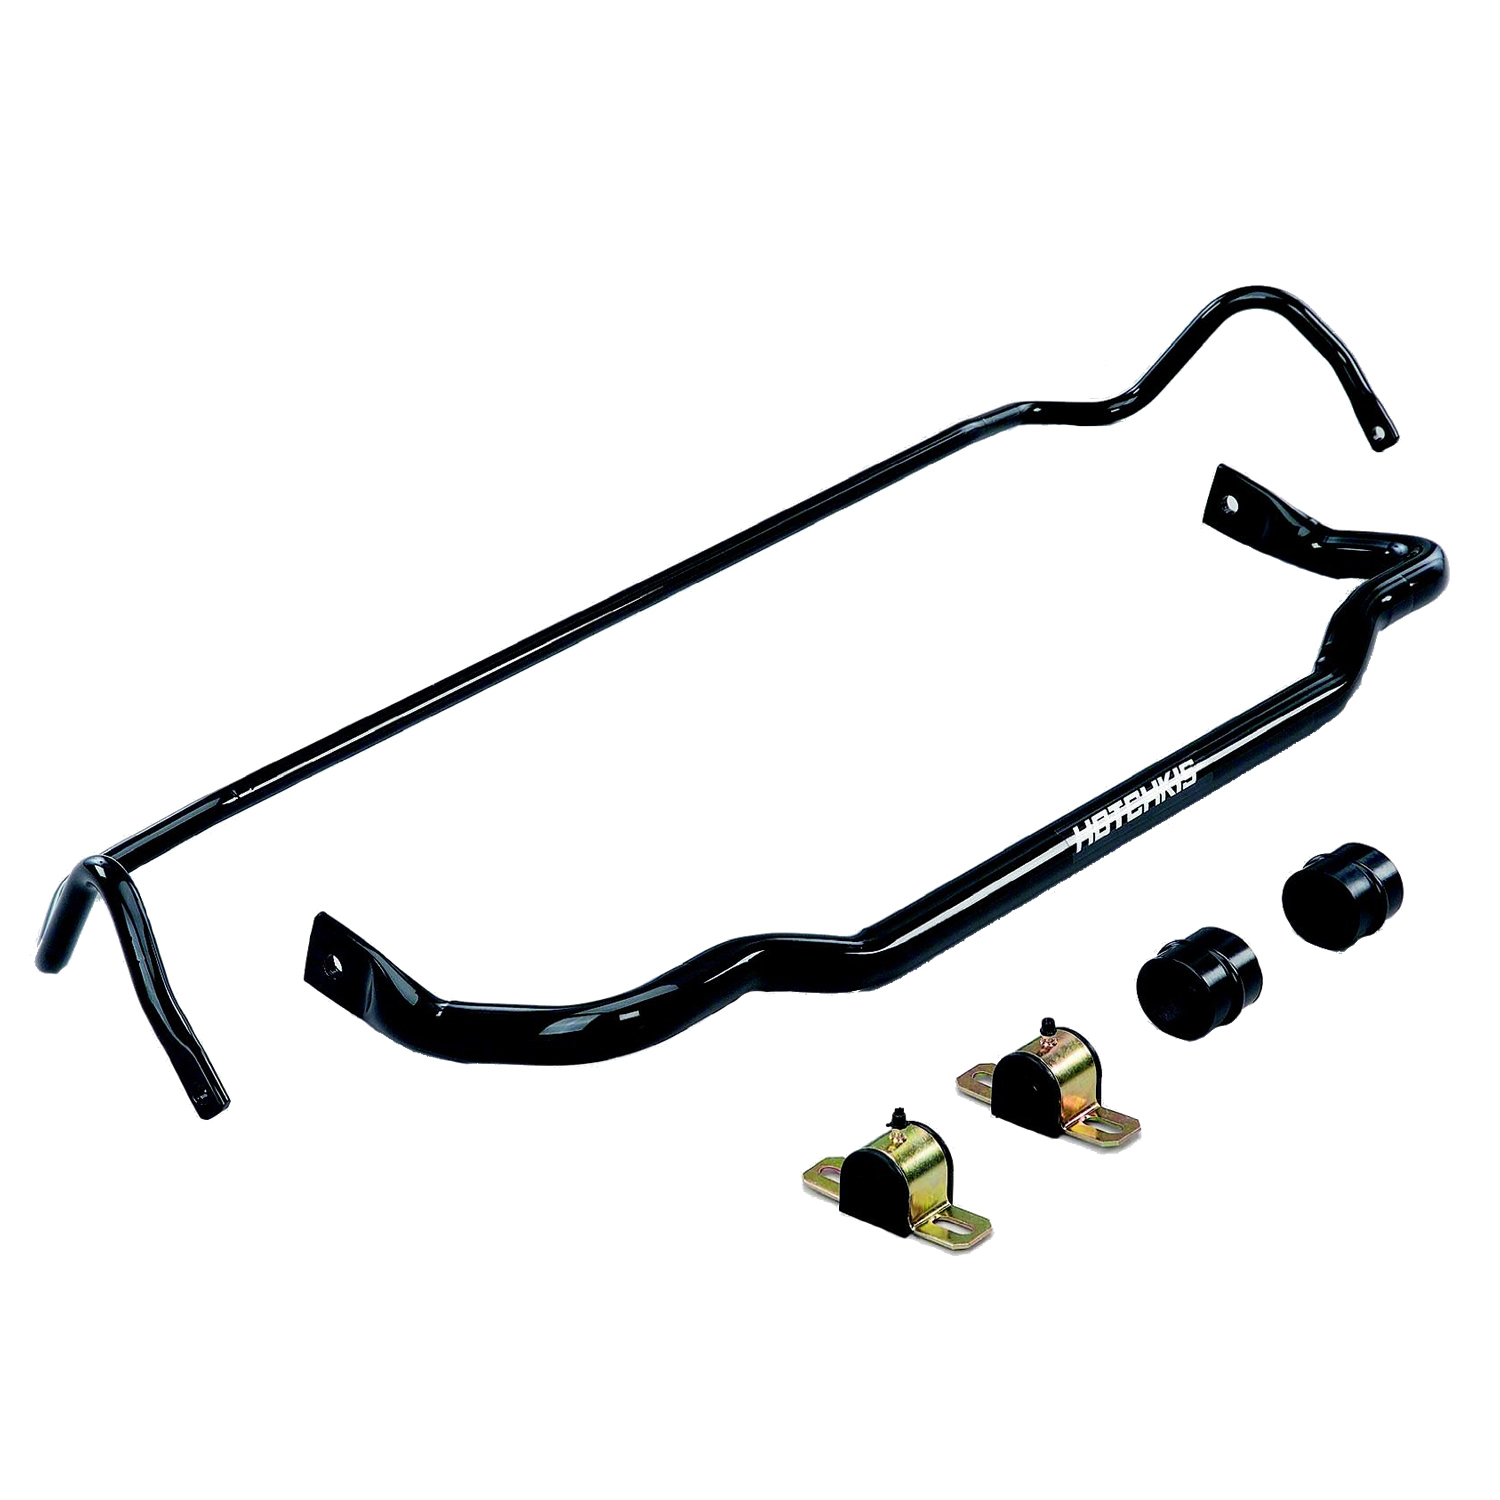 2013+ Dodge Challenger R/T V6 Sport Sway Bar Set from Hotchkis Sport Suspension